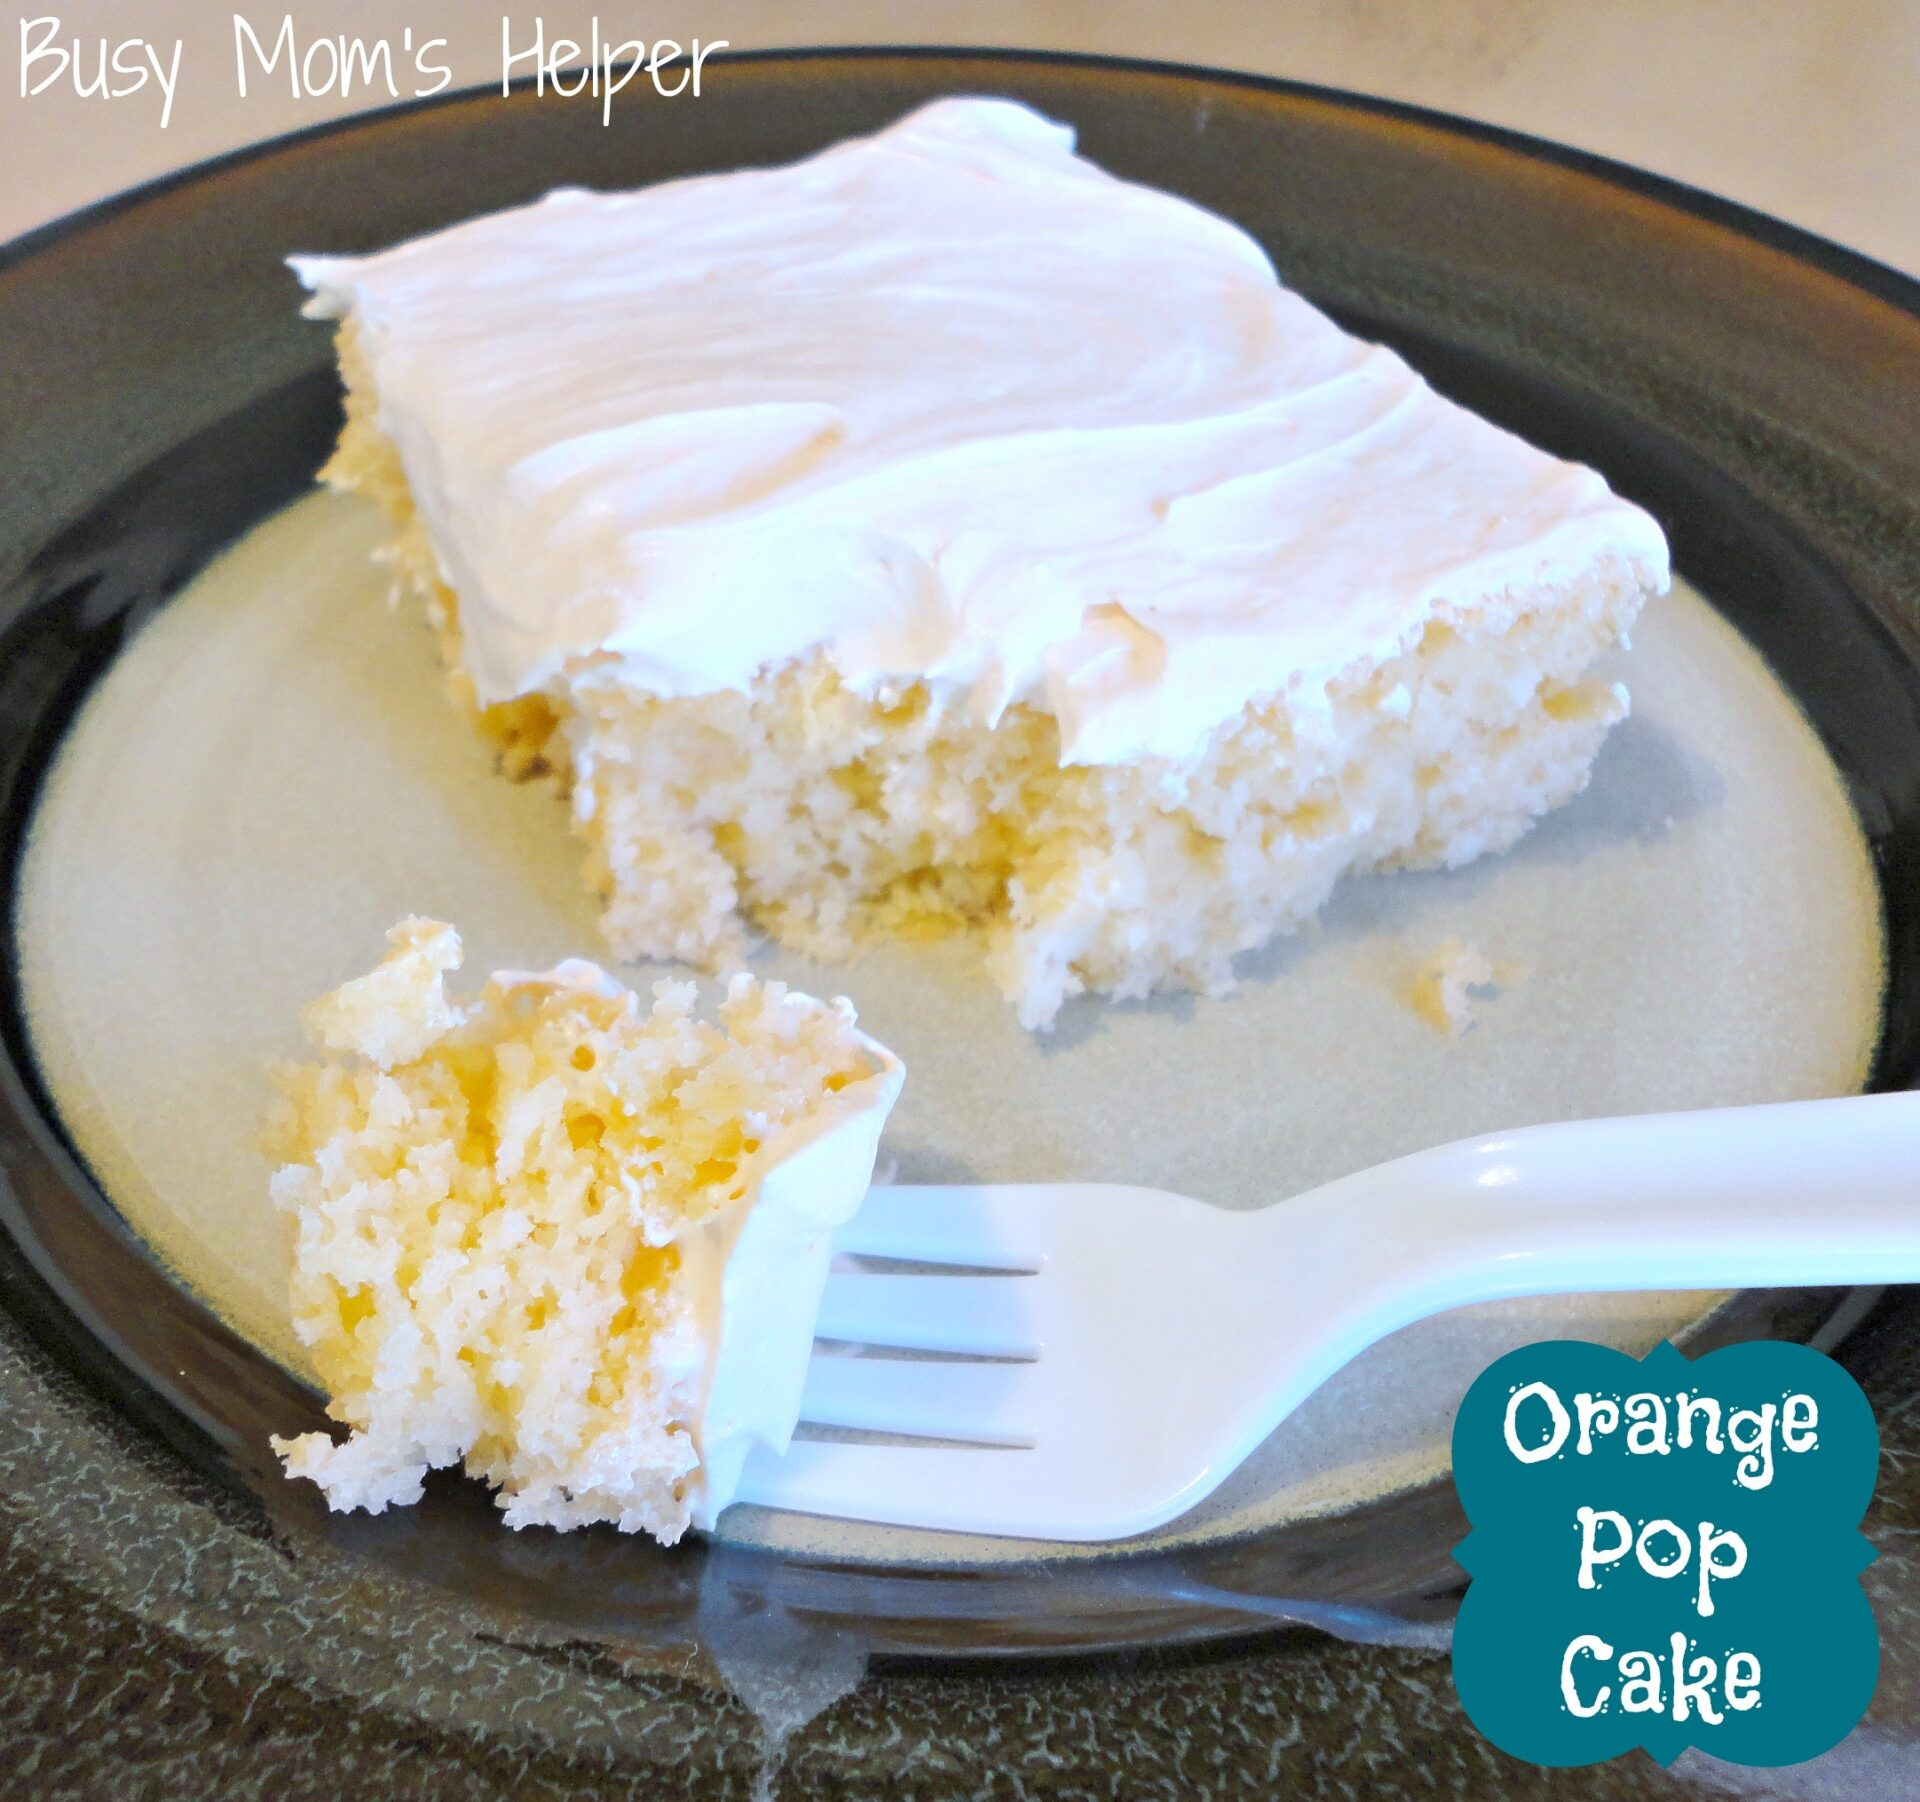 Orange Pop Cake / Busy Mom's Helper